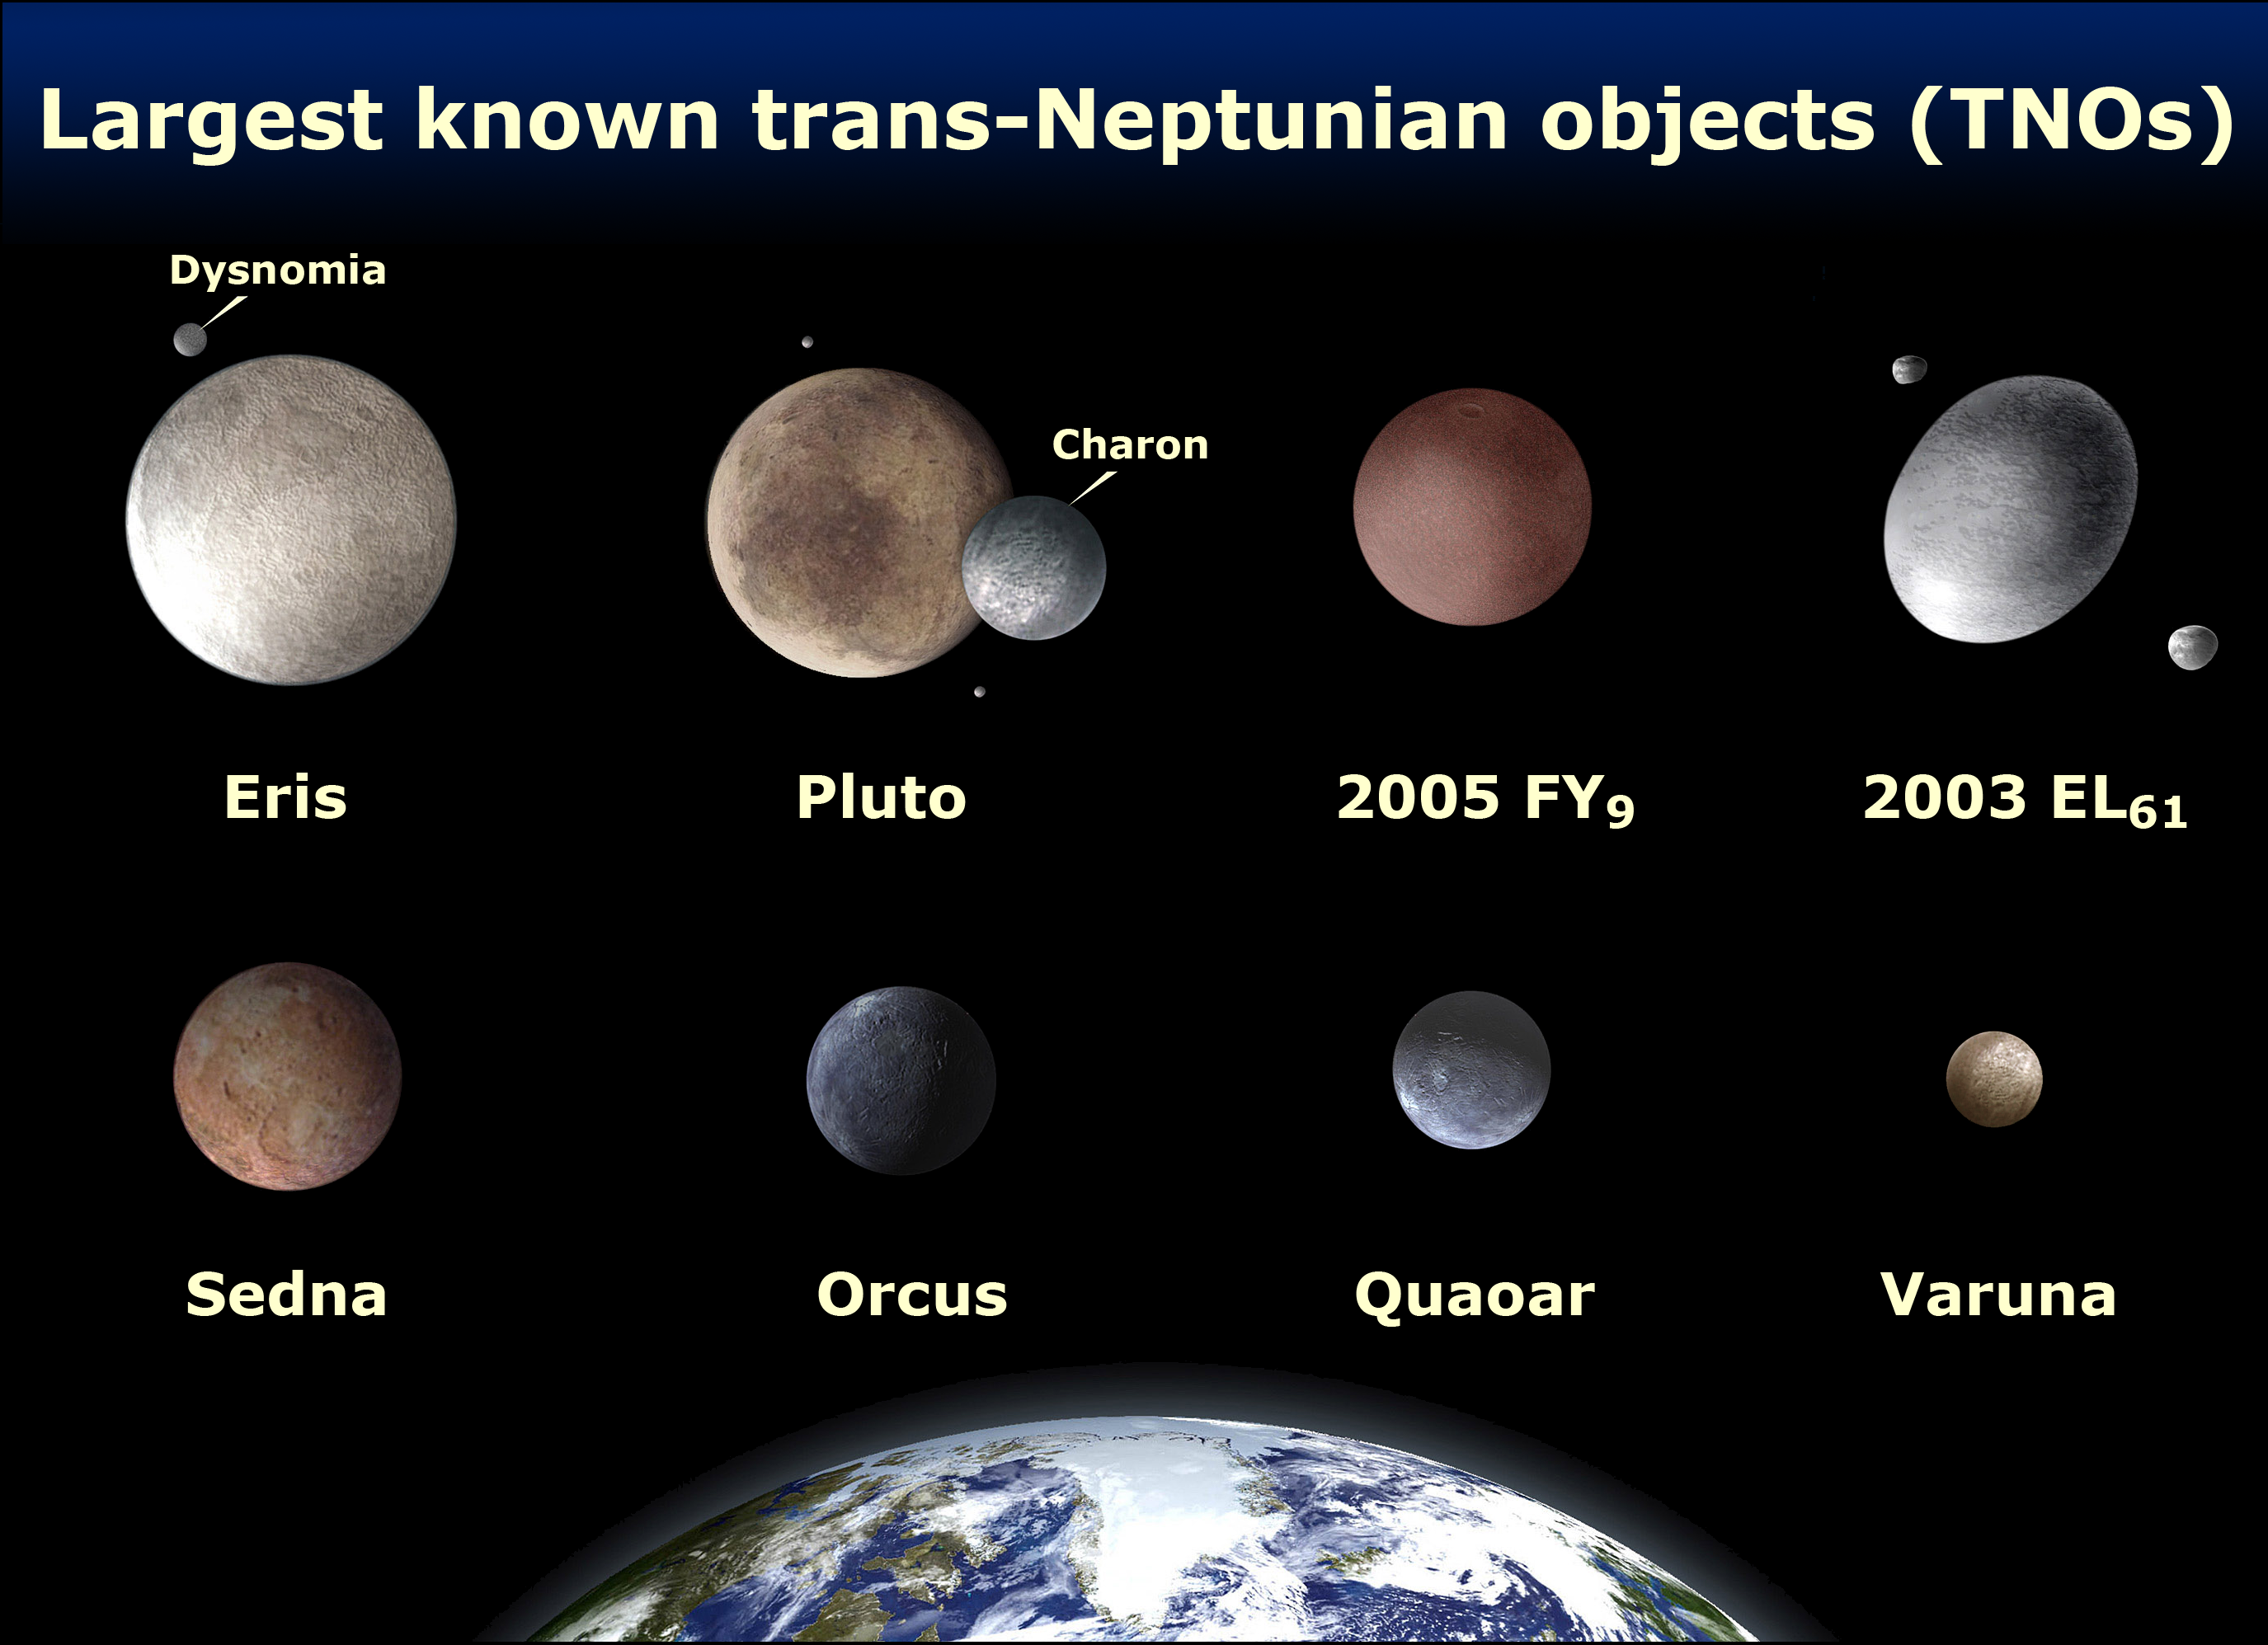 lots of new stuff here since i was a kid  i would love to find an orbital  diagram of all of these